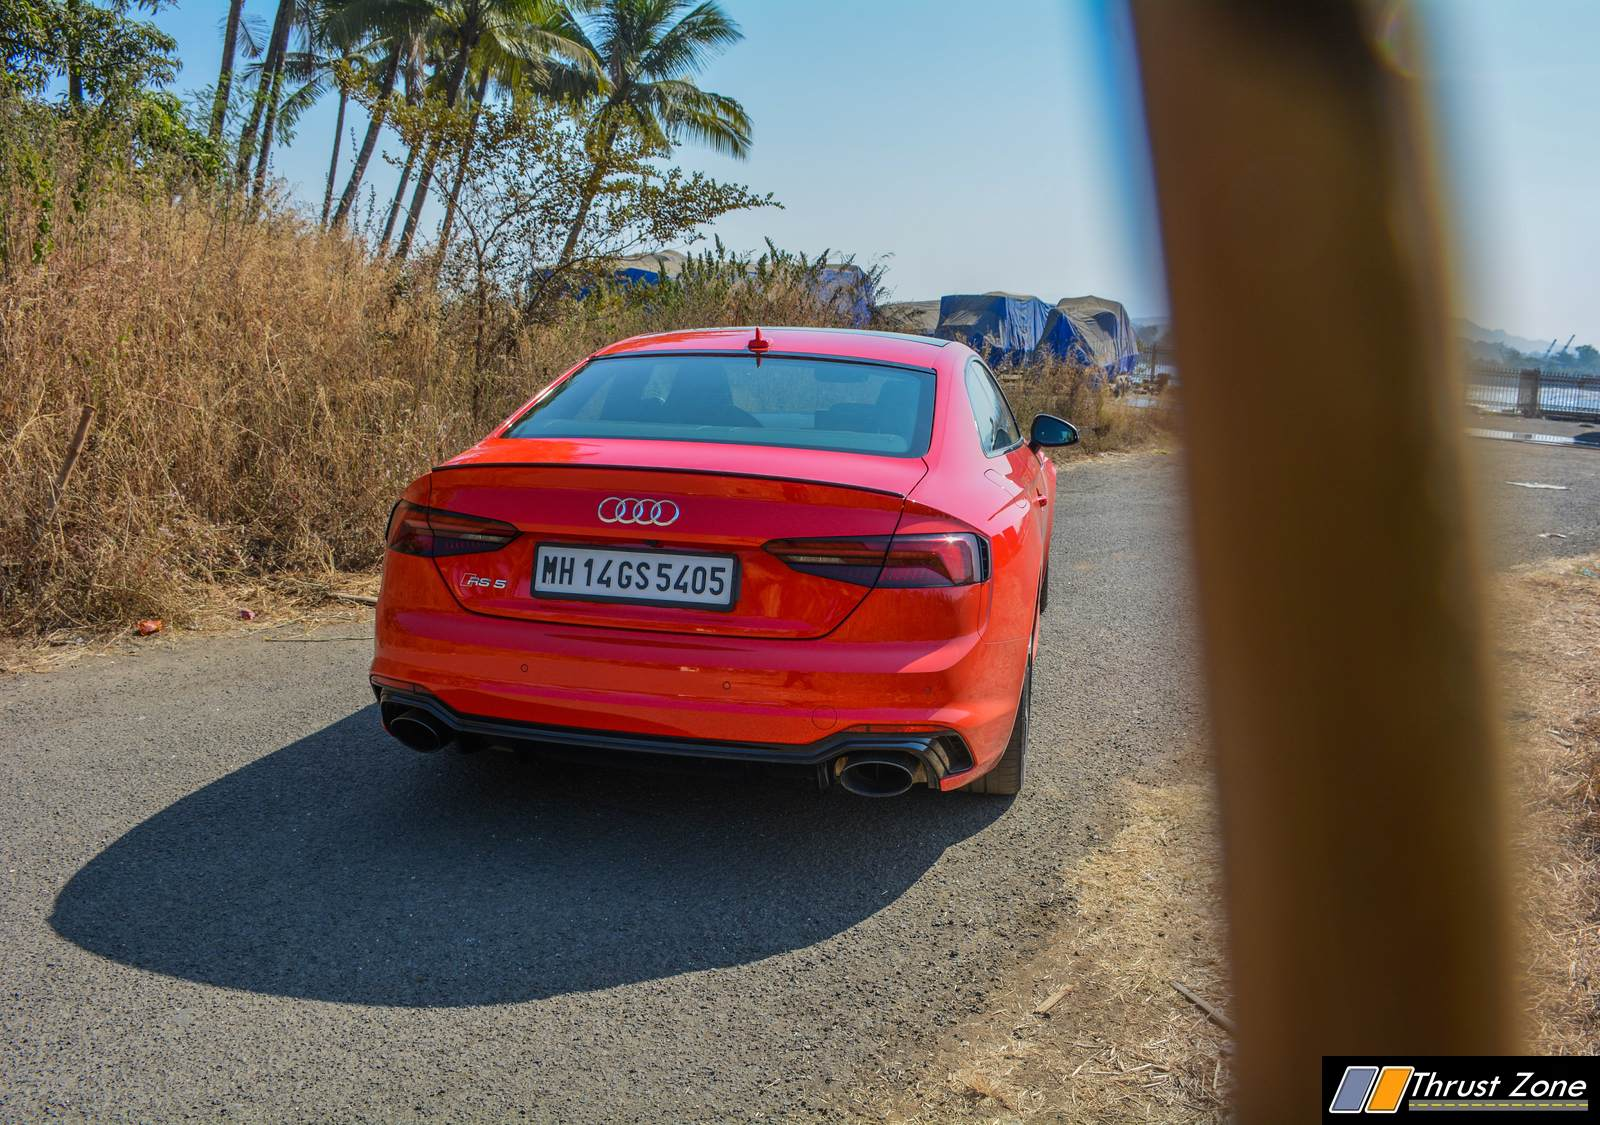 https://www.thrustzone.com/wp-content/uploads/2018/12/2018-Audi-RS5-INDIA-REVIEW-7.jpg